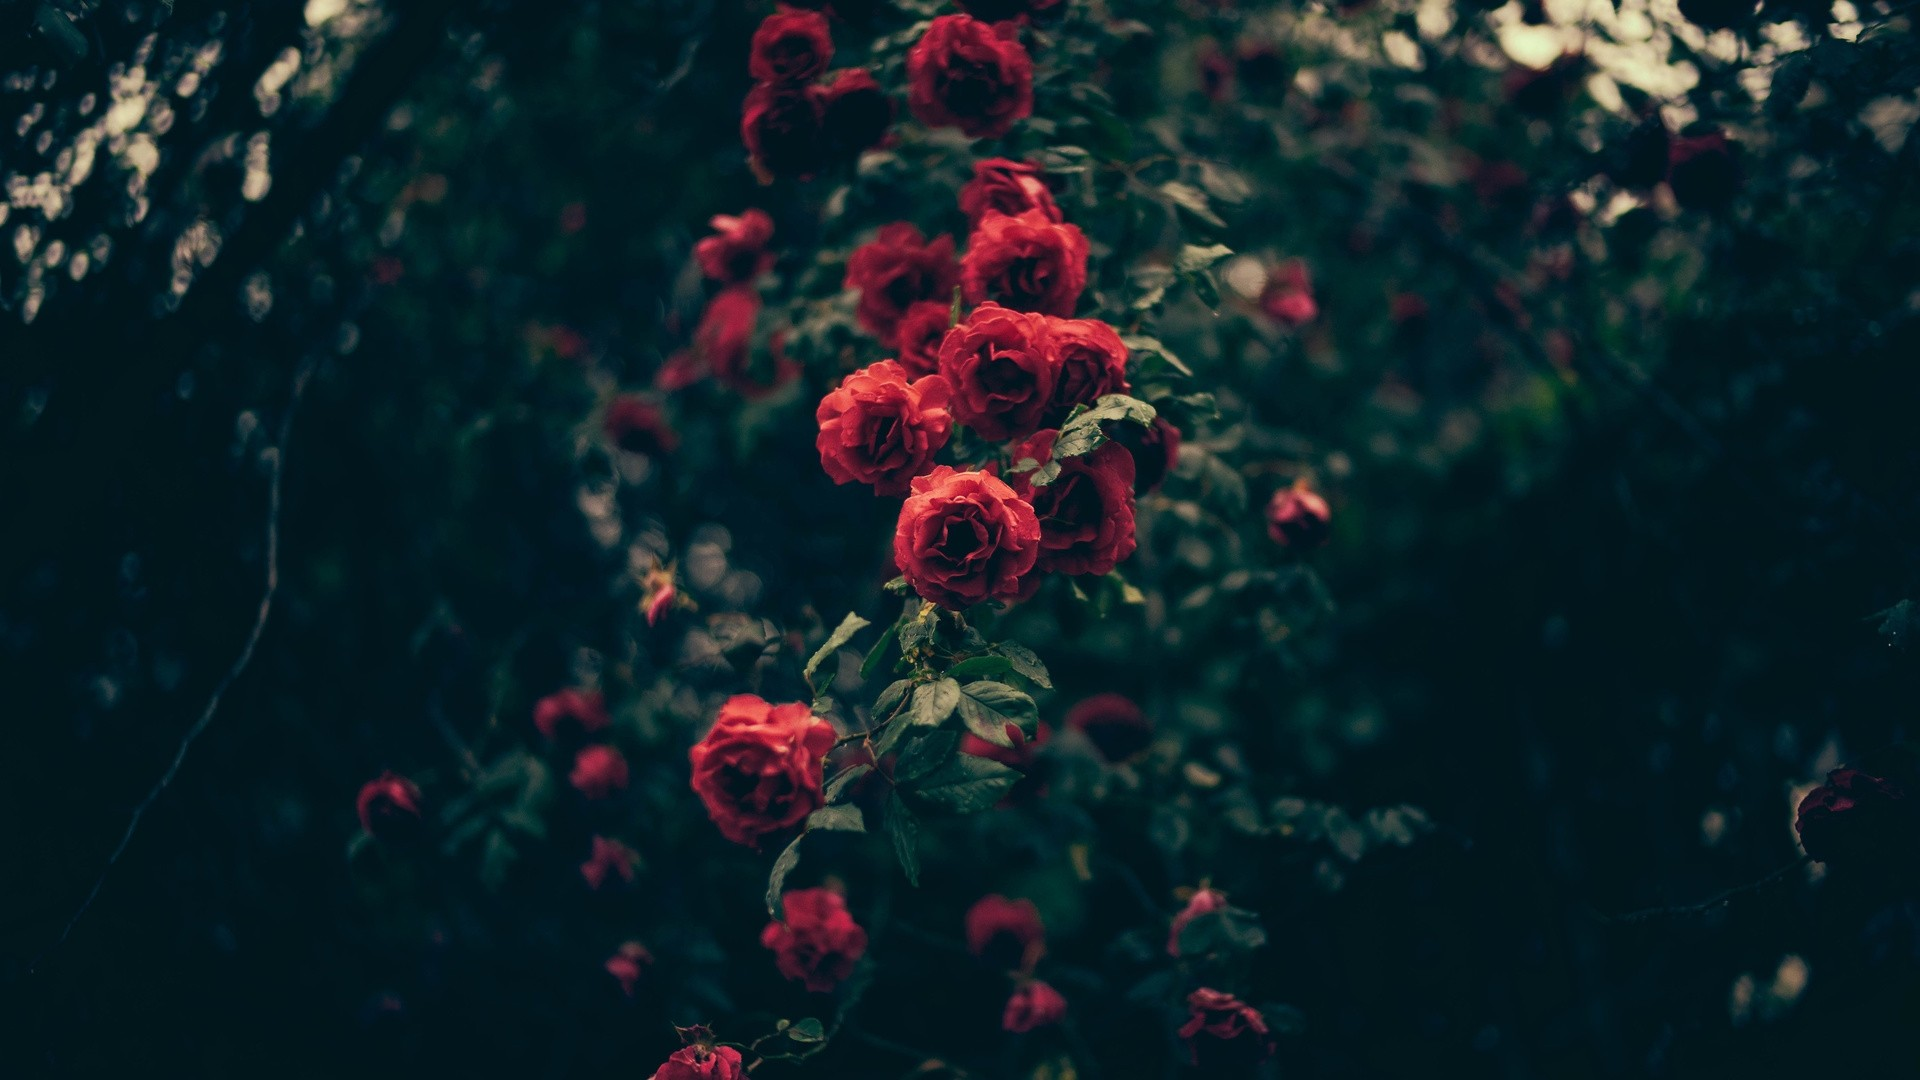 Aesthetic Flower Picture